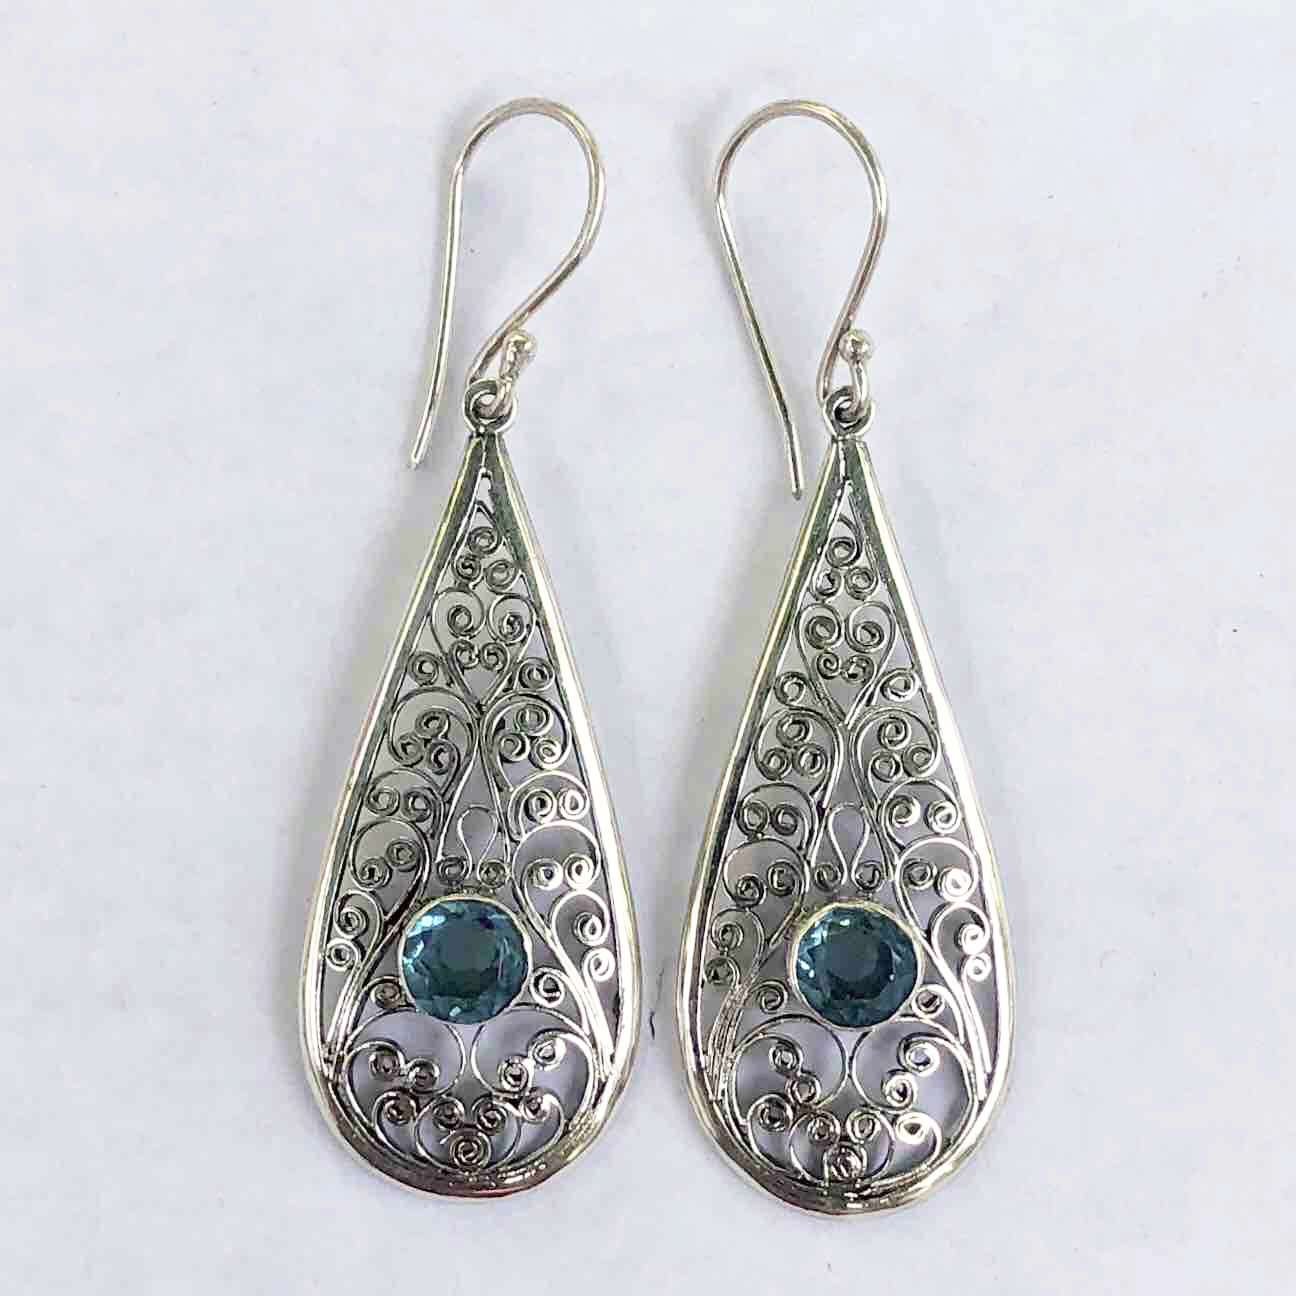 (UNIQUE 925 BALI SILVER FILIGREE EARRINGS WITH BLUE TOPAZ)